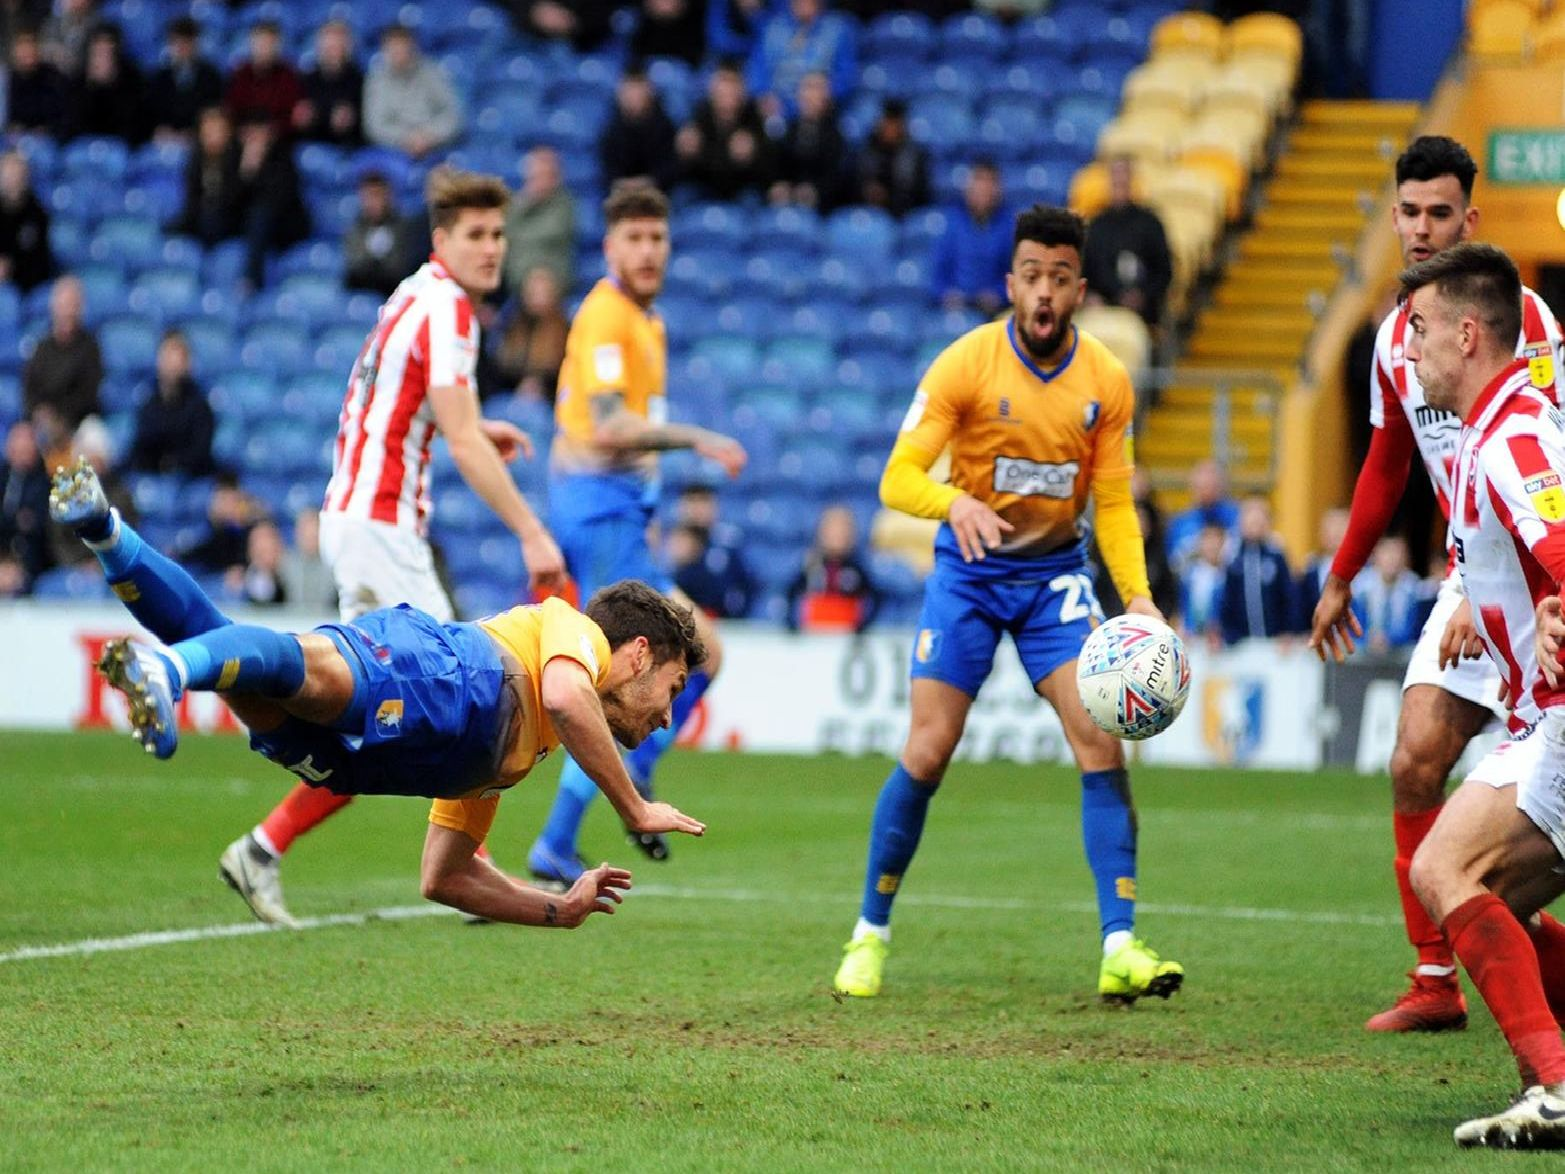 Atkinson put Stags back in front